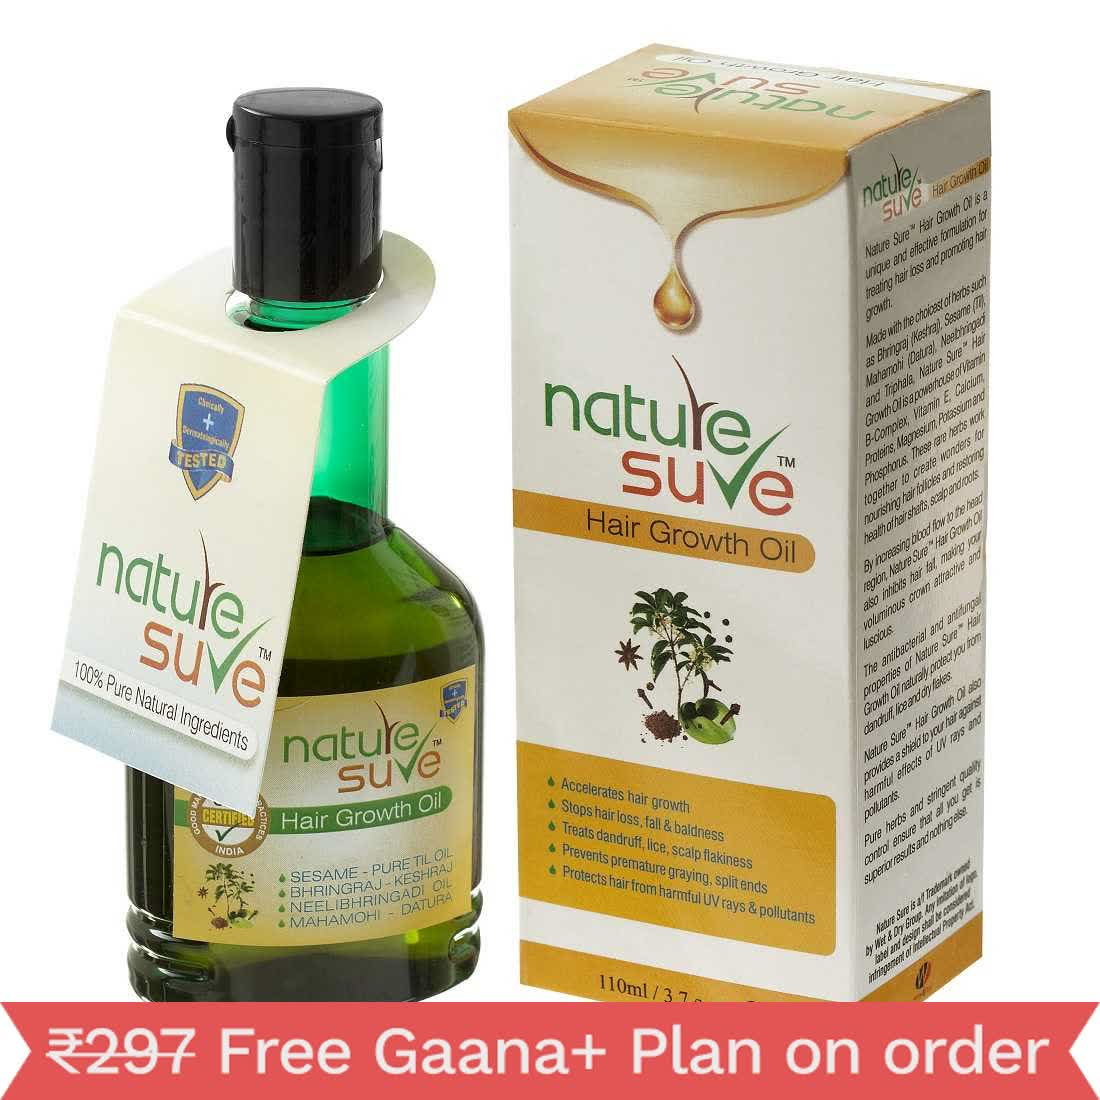 Nature Sure Hair Growth Oil for Darker and Stronger Hair in Men and Women - 1 Pack (110ml)